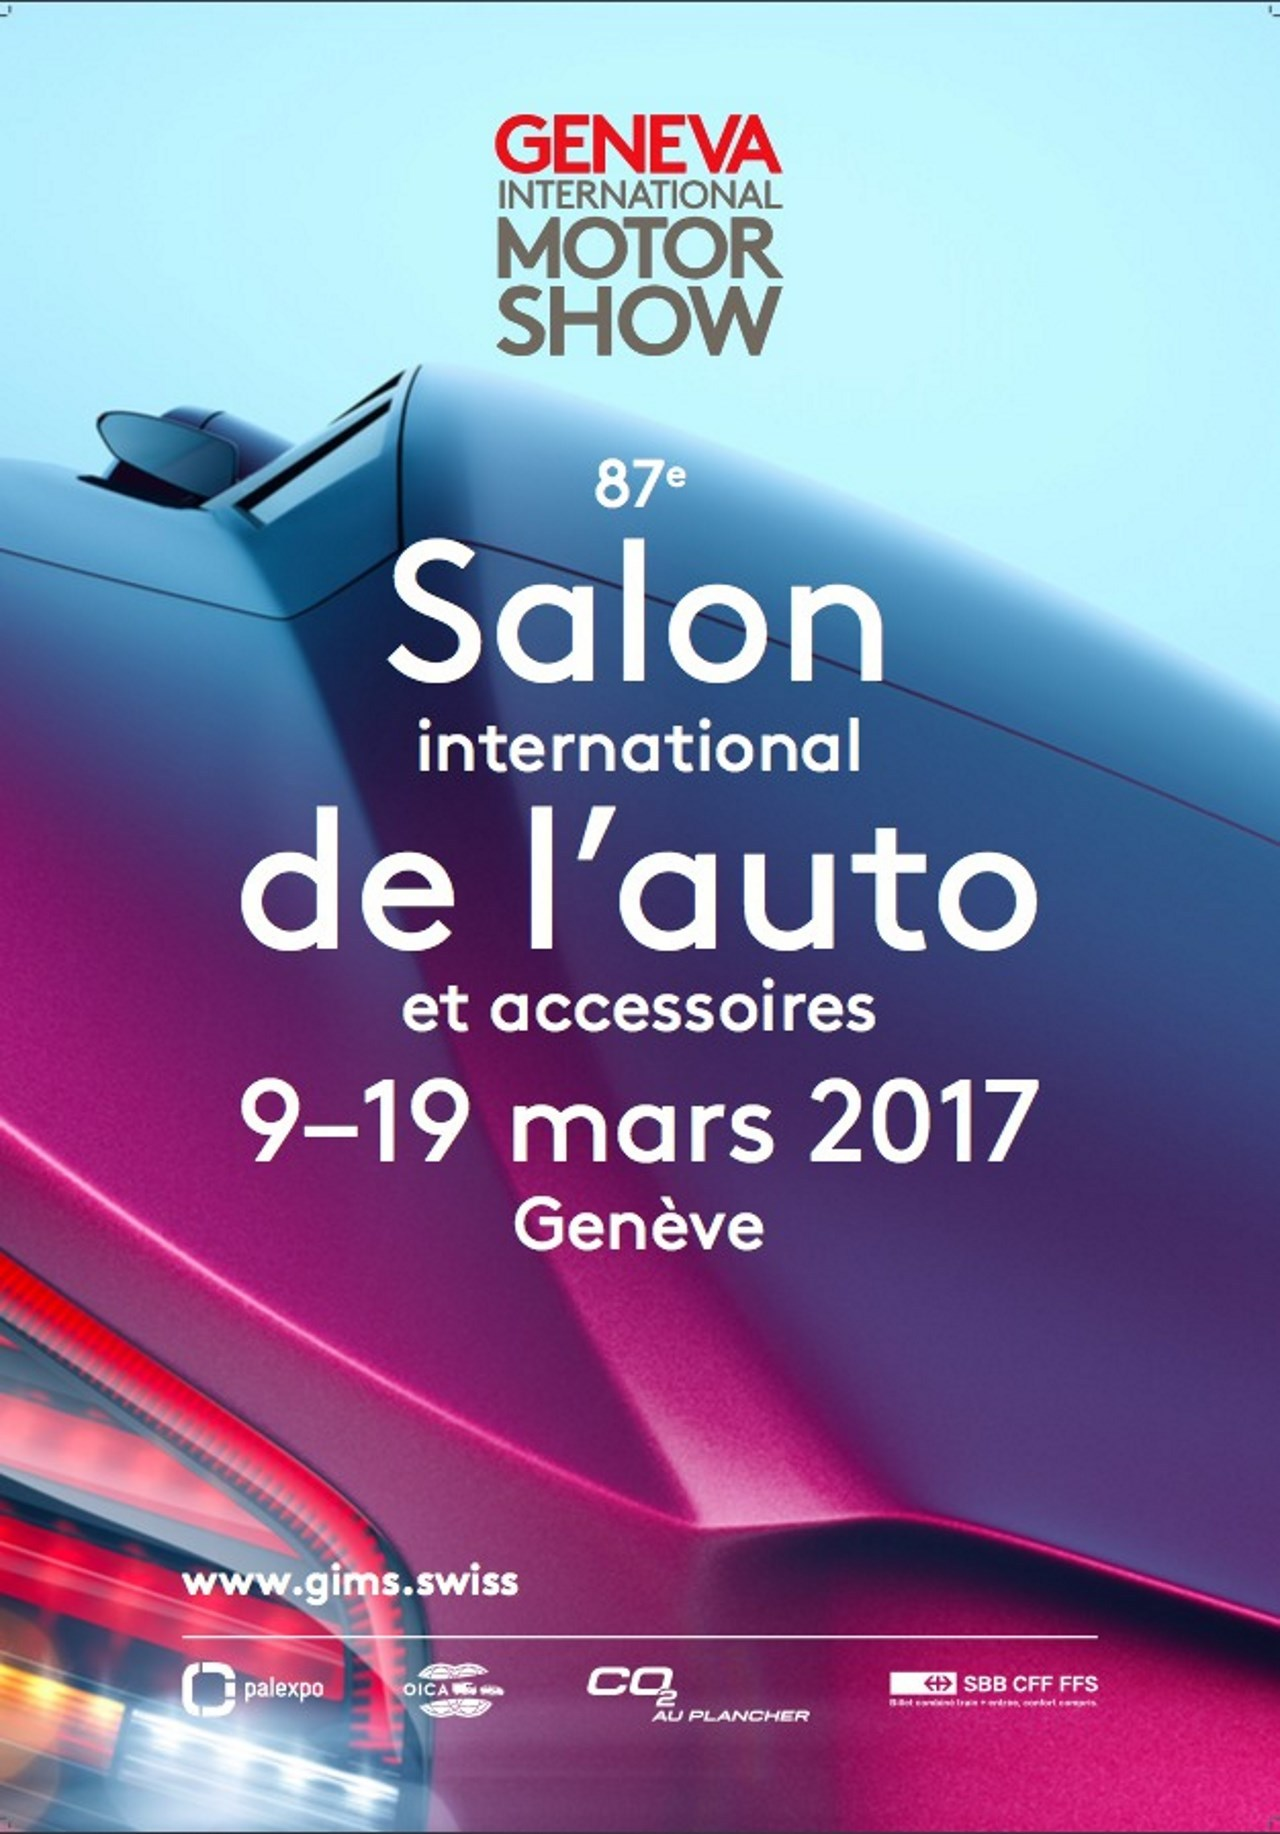 Salon de gen ve 2017 l 39 affiche d voil e photo 2 l 39 argus for Salon de l auto geneve tarif